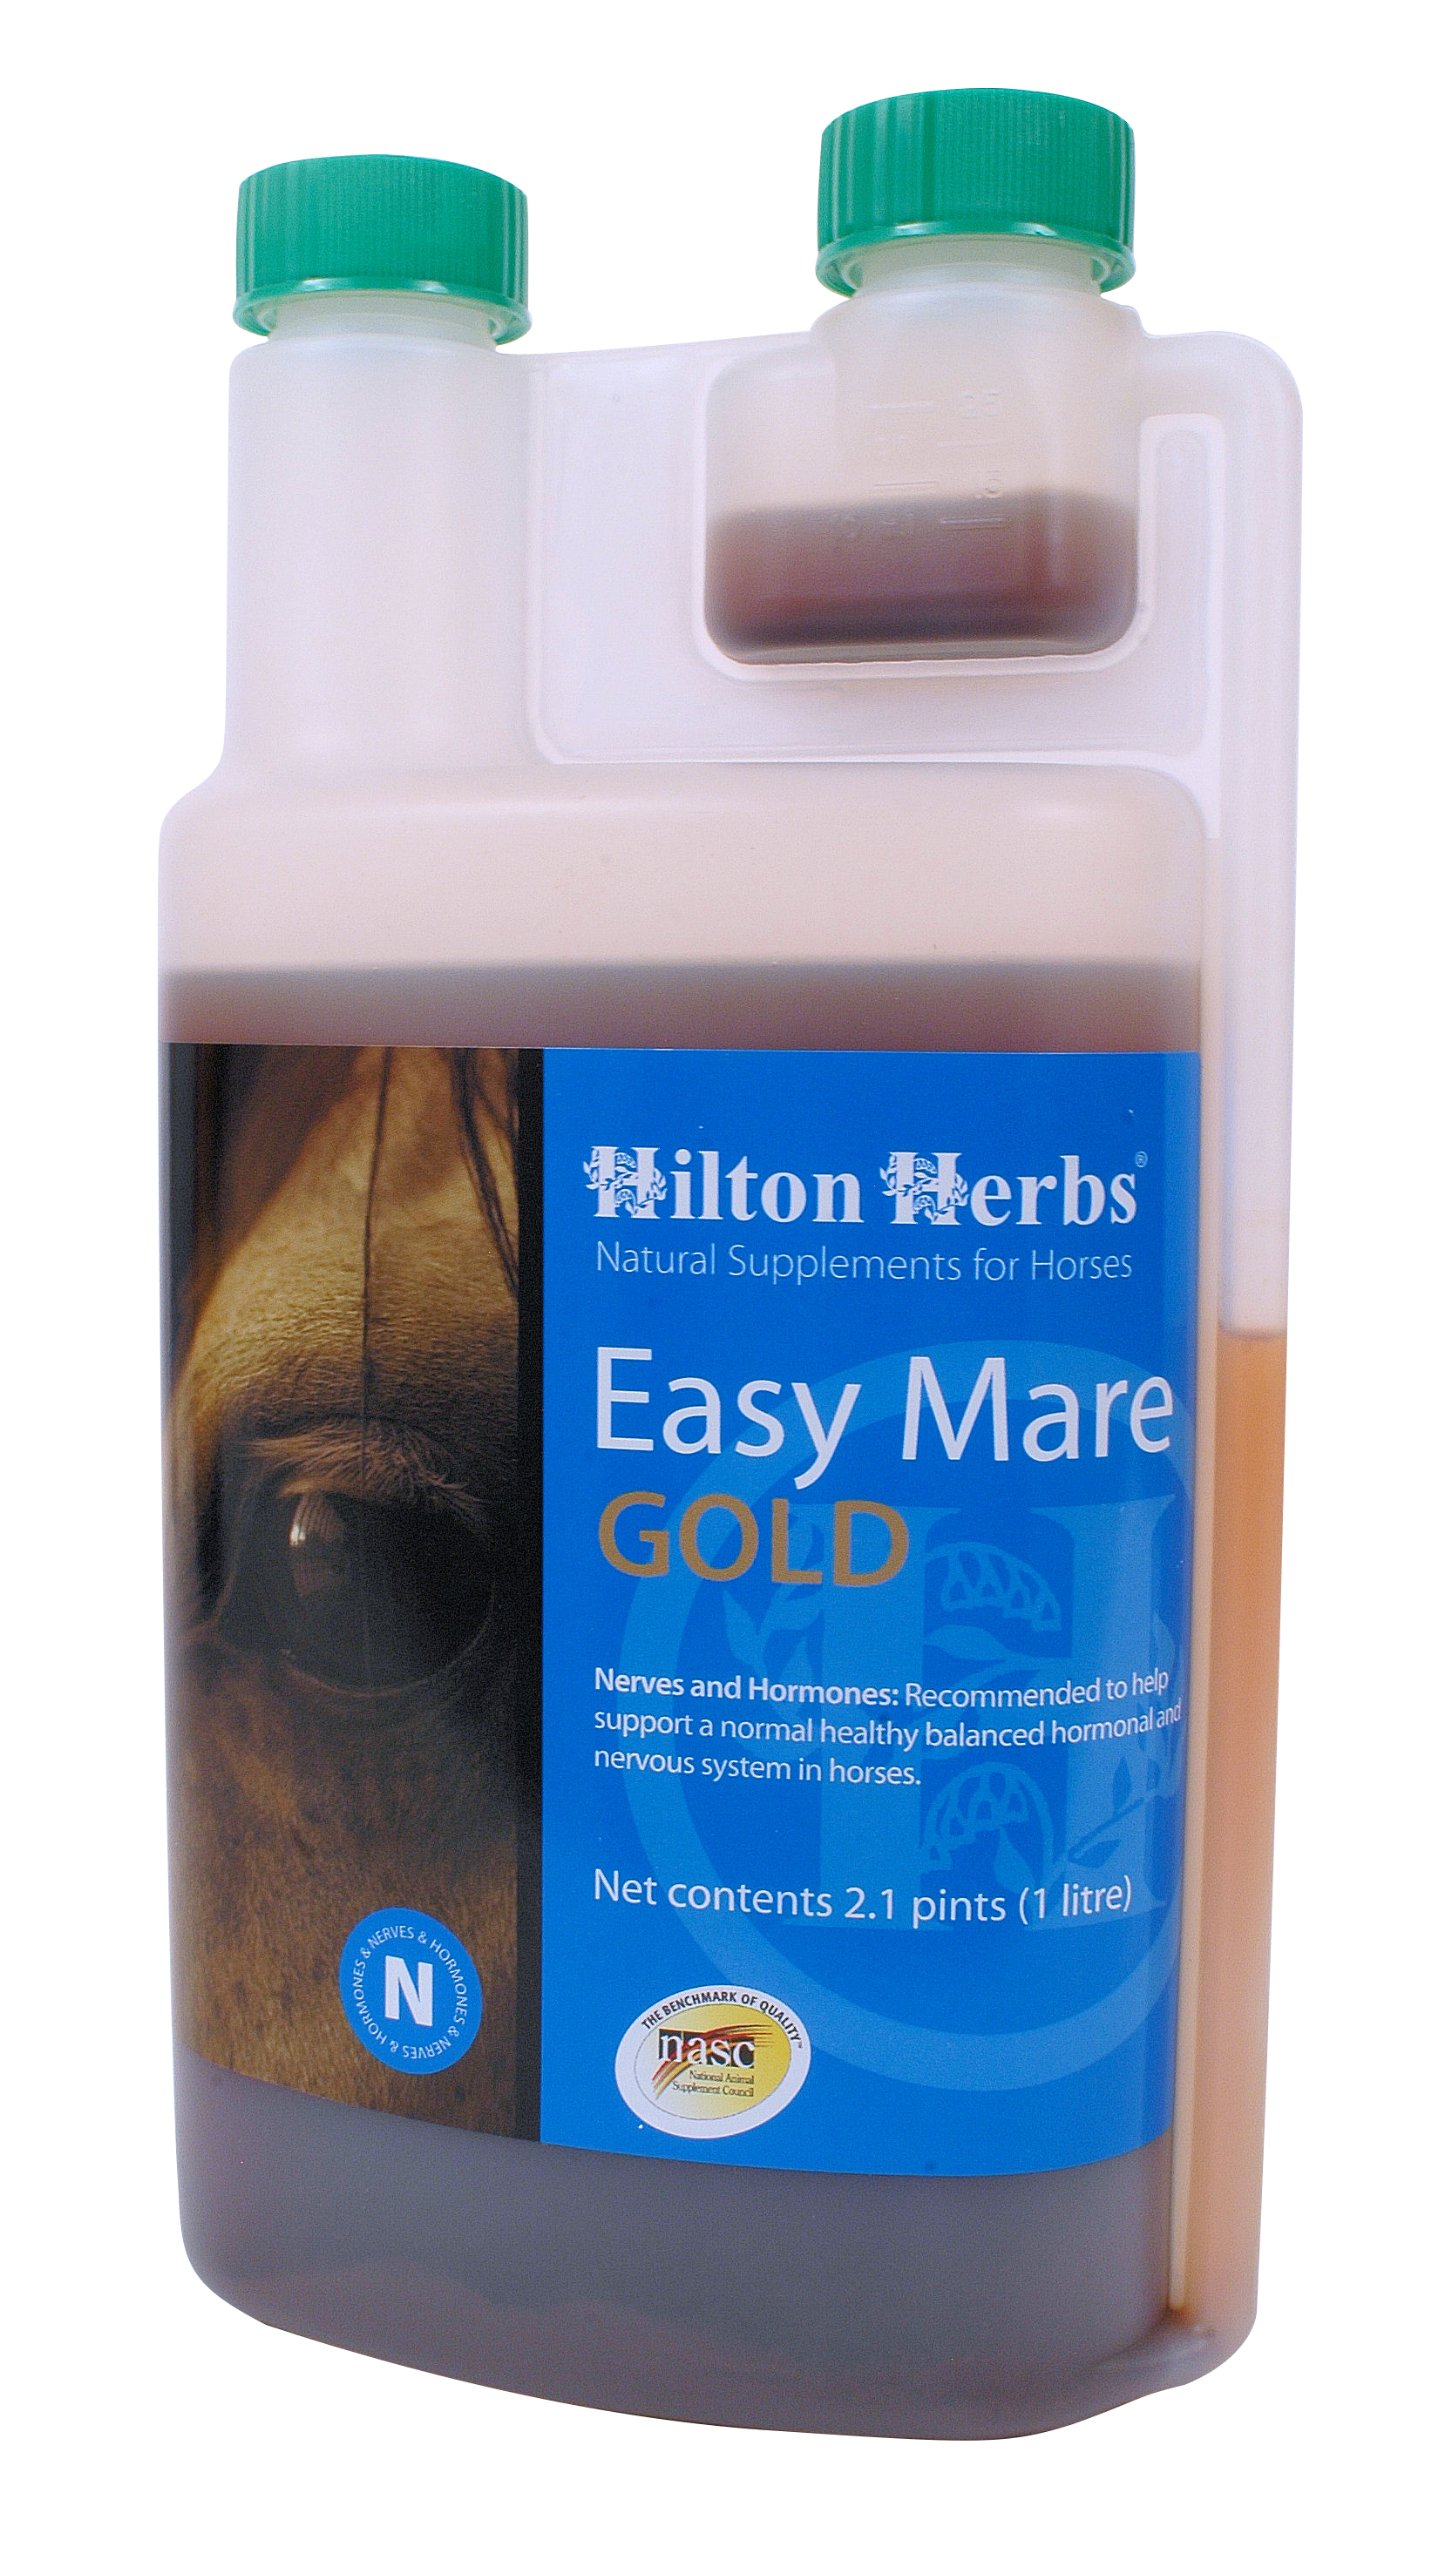 Hilton Herbs Easy Mare Gold Hormone Balancing Liquid Supplement for Horses, 2.1pt Bottle by Hilton Herbs